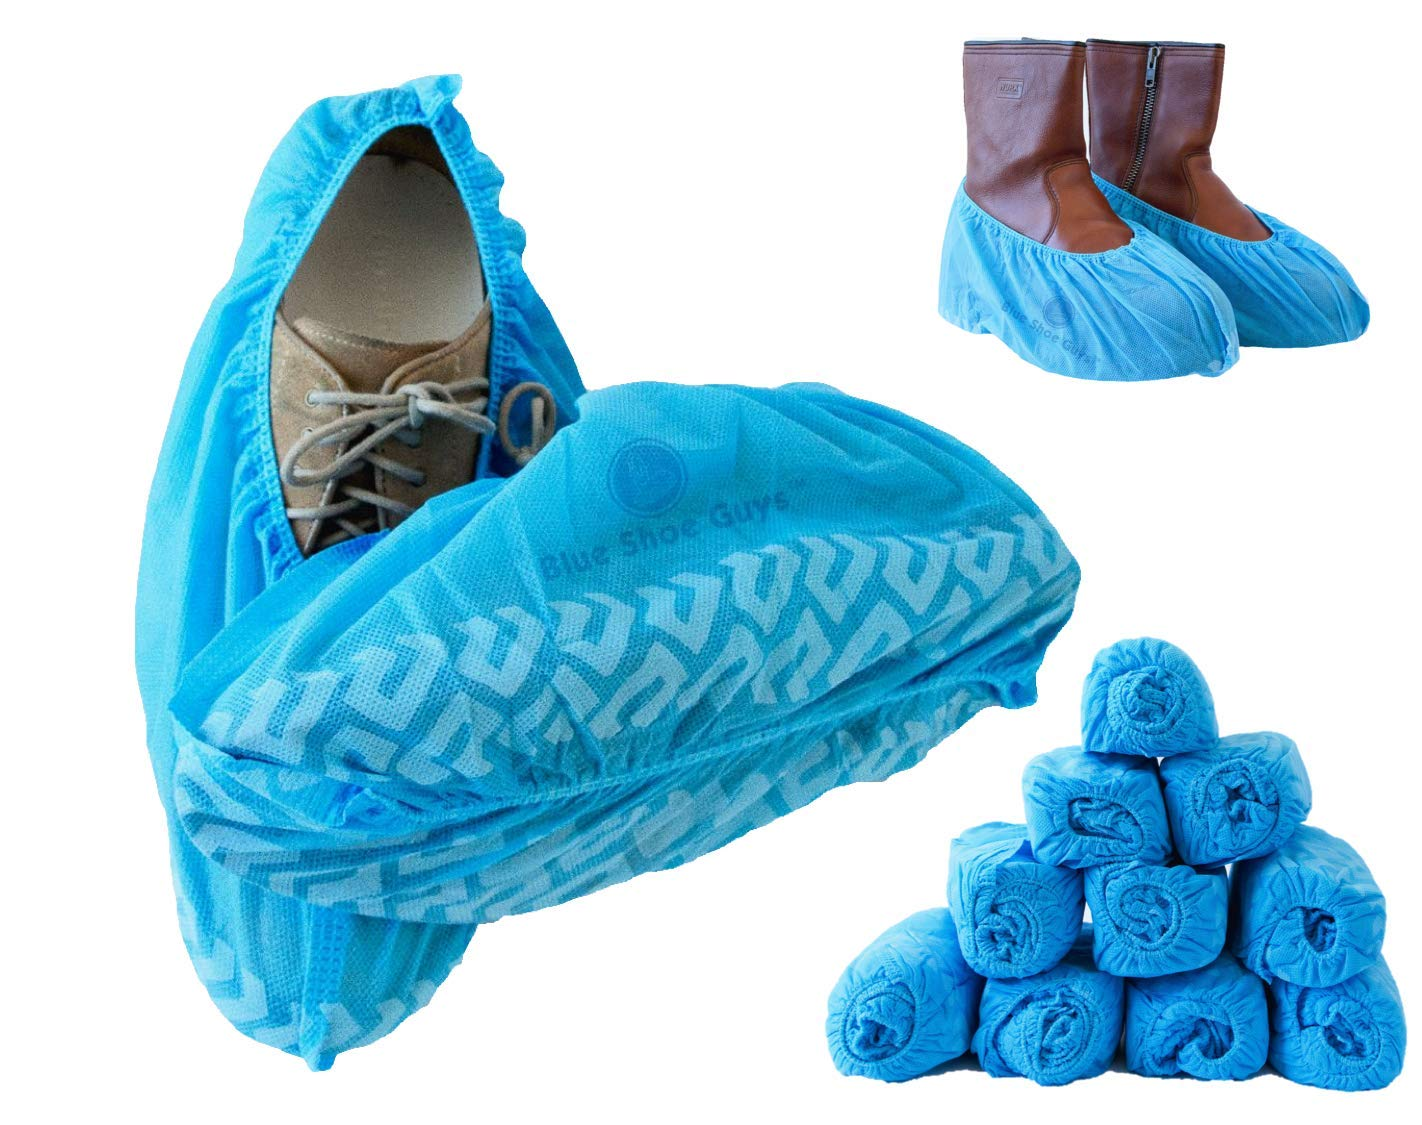 Blue Shoe Guys Premium Boot & Shoe Covers Disposable, 100 Pack | Non Slip Foot Booties, Water Resistant, Indoor/Outdoor, Protects Carpets/Floors | Large Size Fits Most (upto US Men 11.5 Women 12.5)